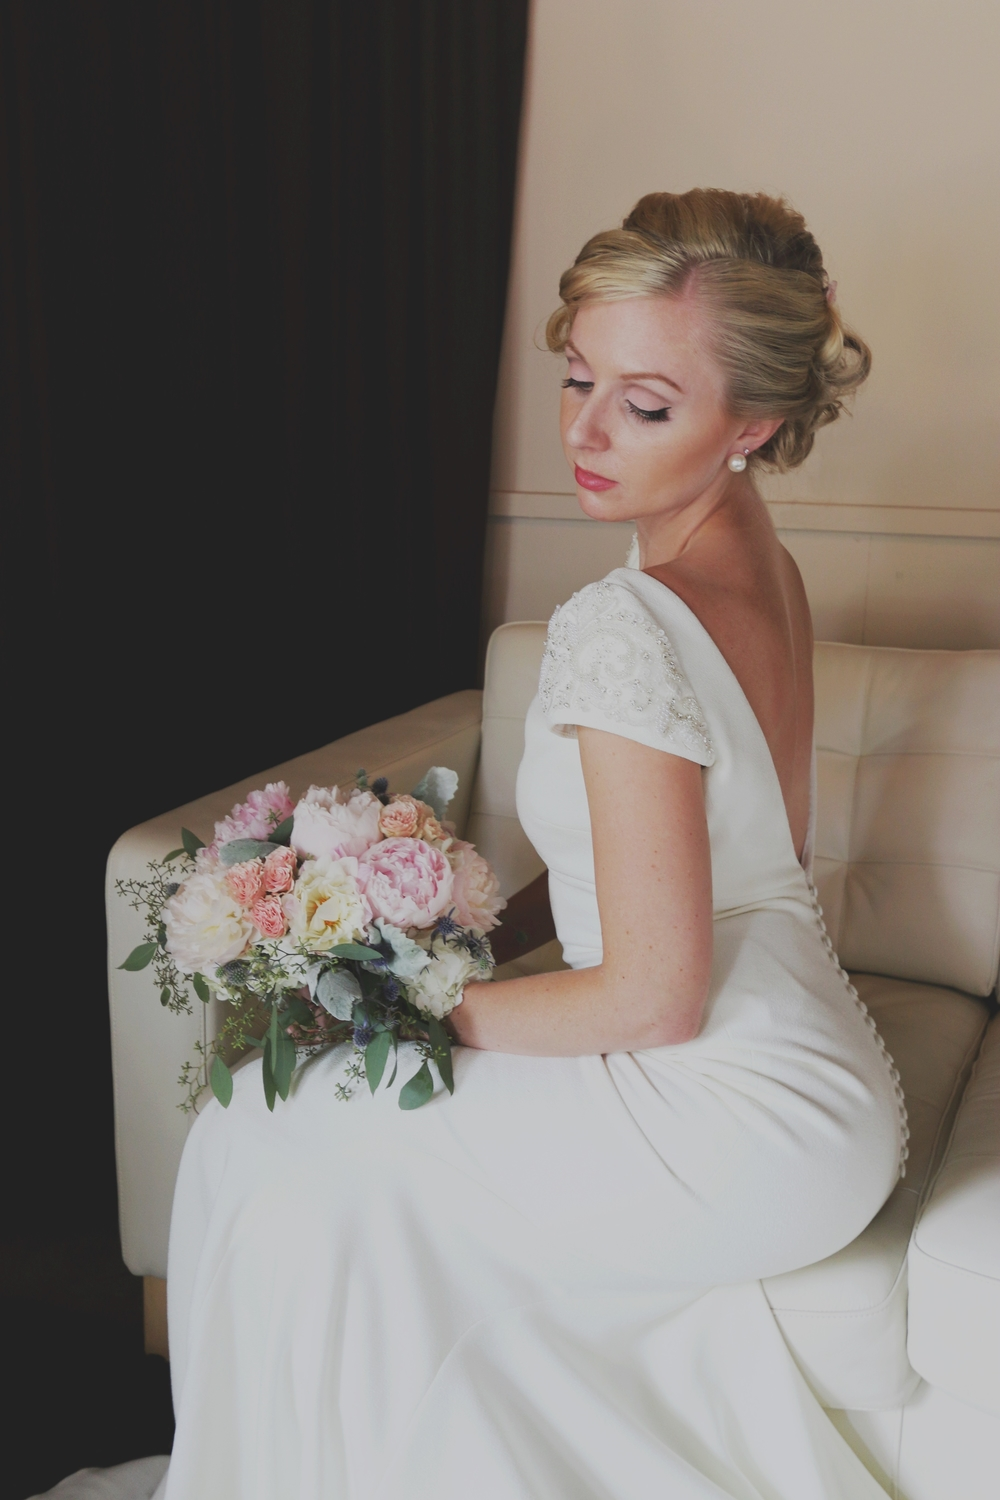 styled shoot a marilyn monroeinspired wedding � the